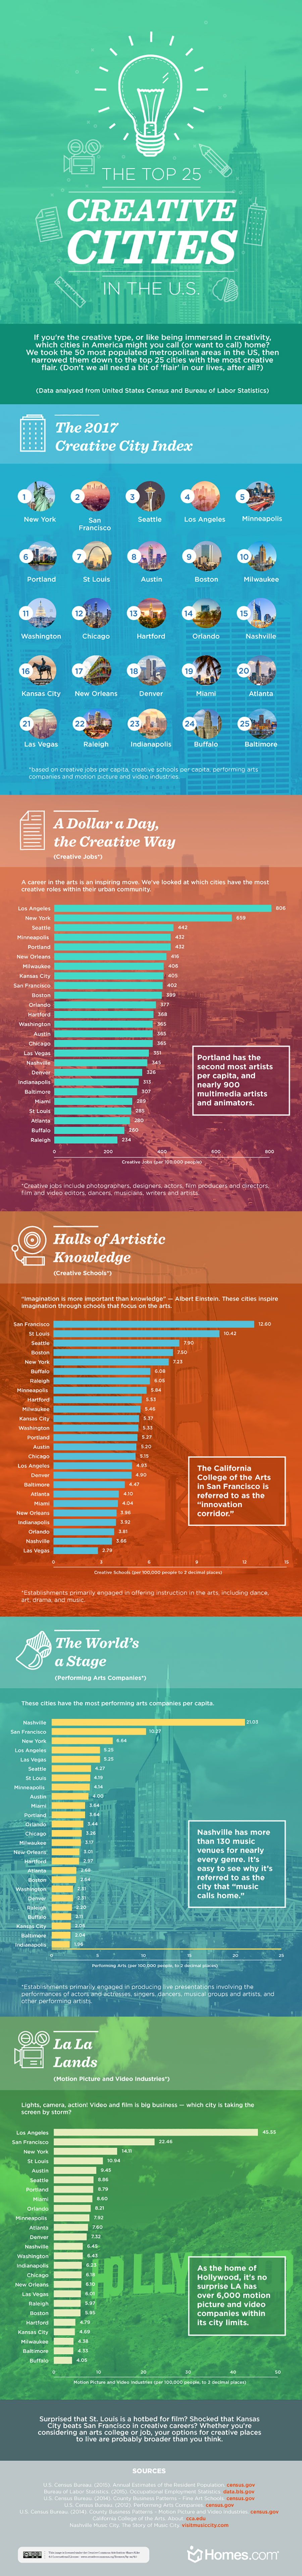 The Top 25 Creative Cities In The U.S. #Infographic